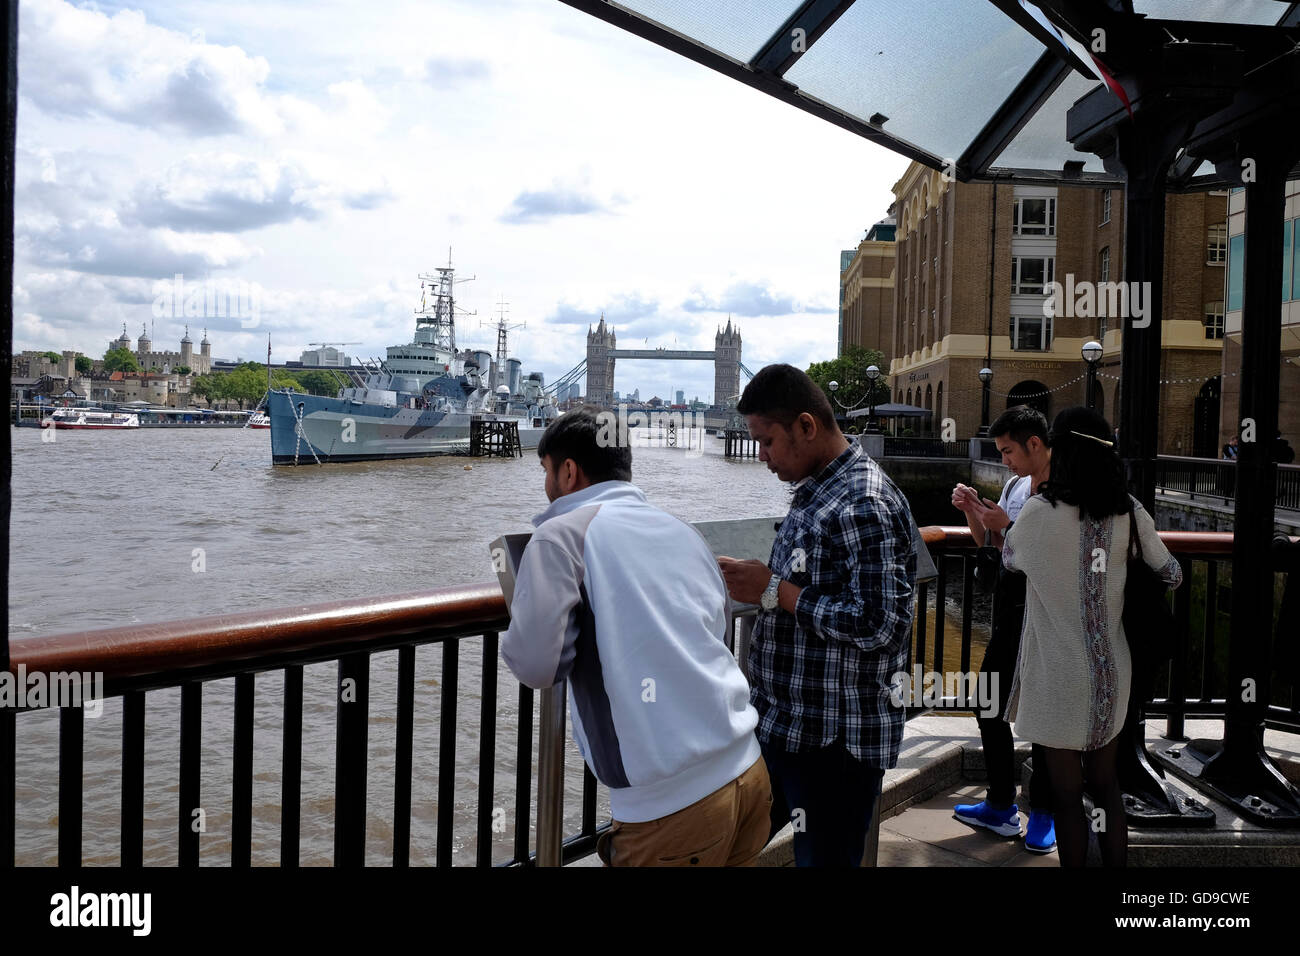 Tourists on the South Bank walkway with HMS Belfast and Tower Bridge a London landmark in the background - Stock Image